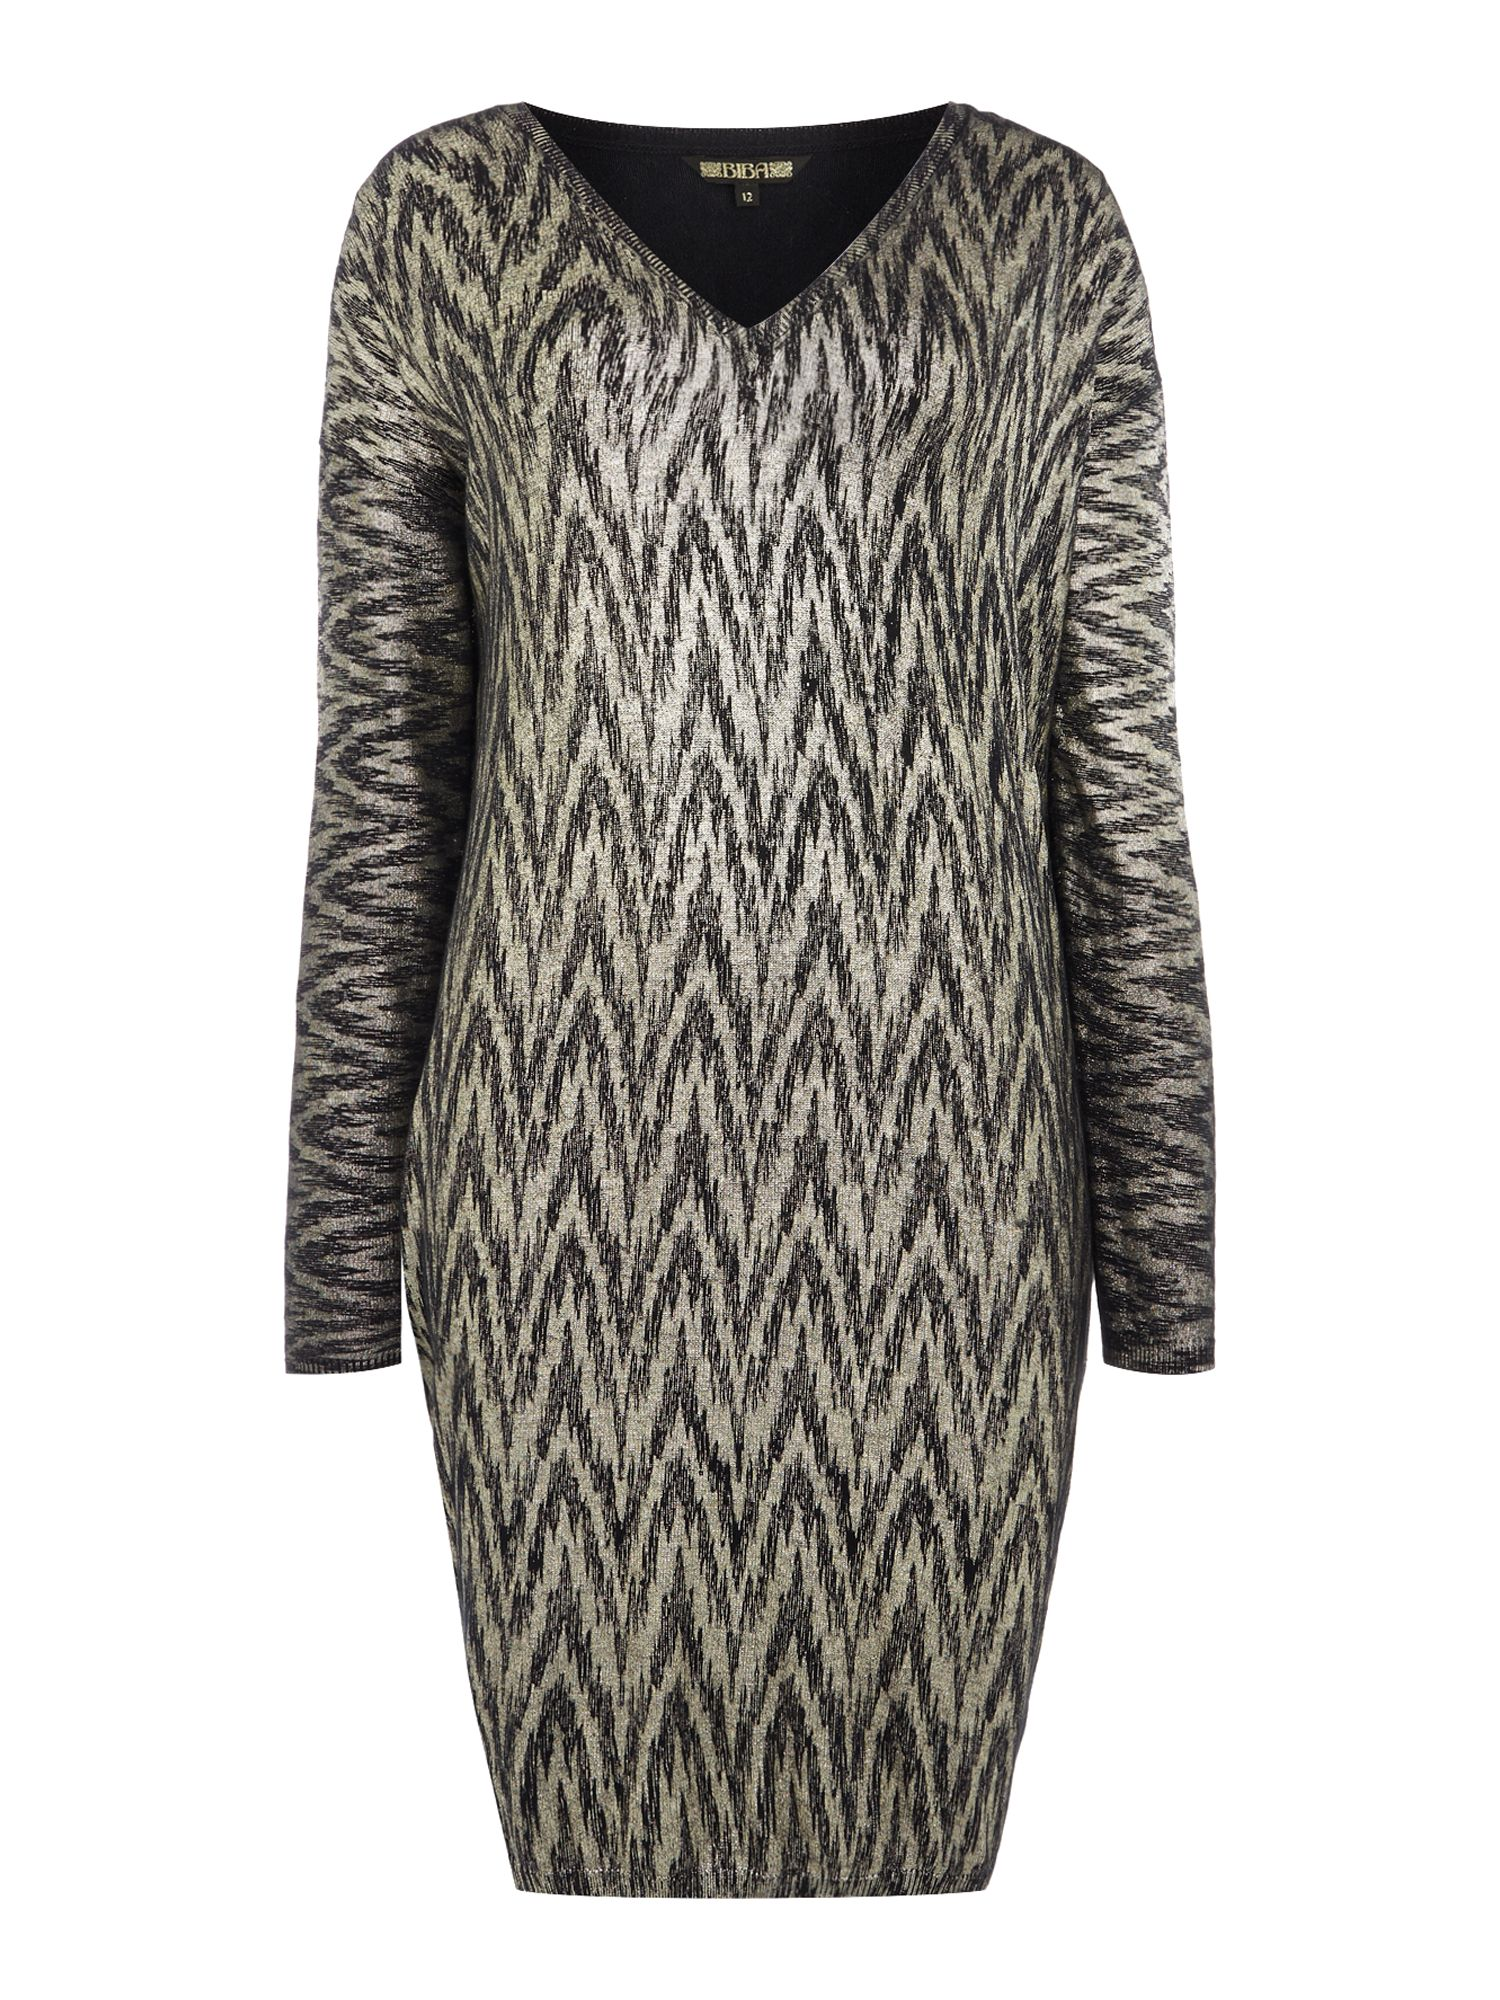 Biba Metallic printed v-neck jumper dress, Multi-Coloured